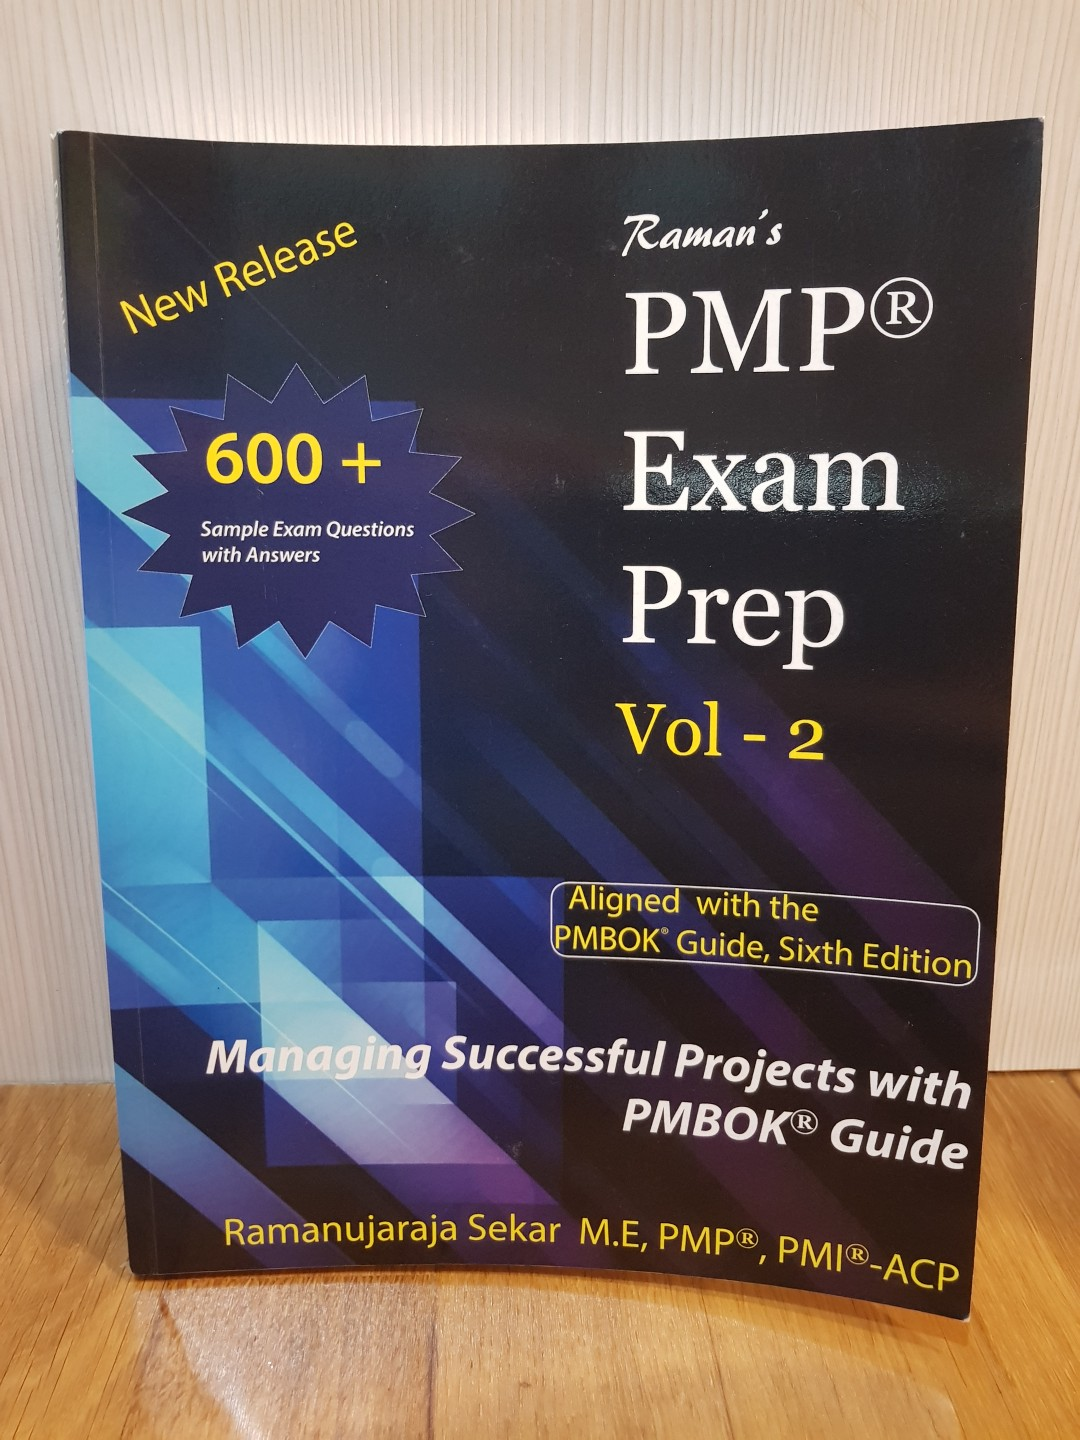 RAMAN's PMP EXAM PREP Guide for PMBOK 6th edition - Volume 2